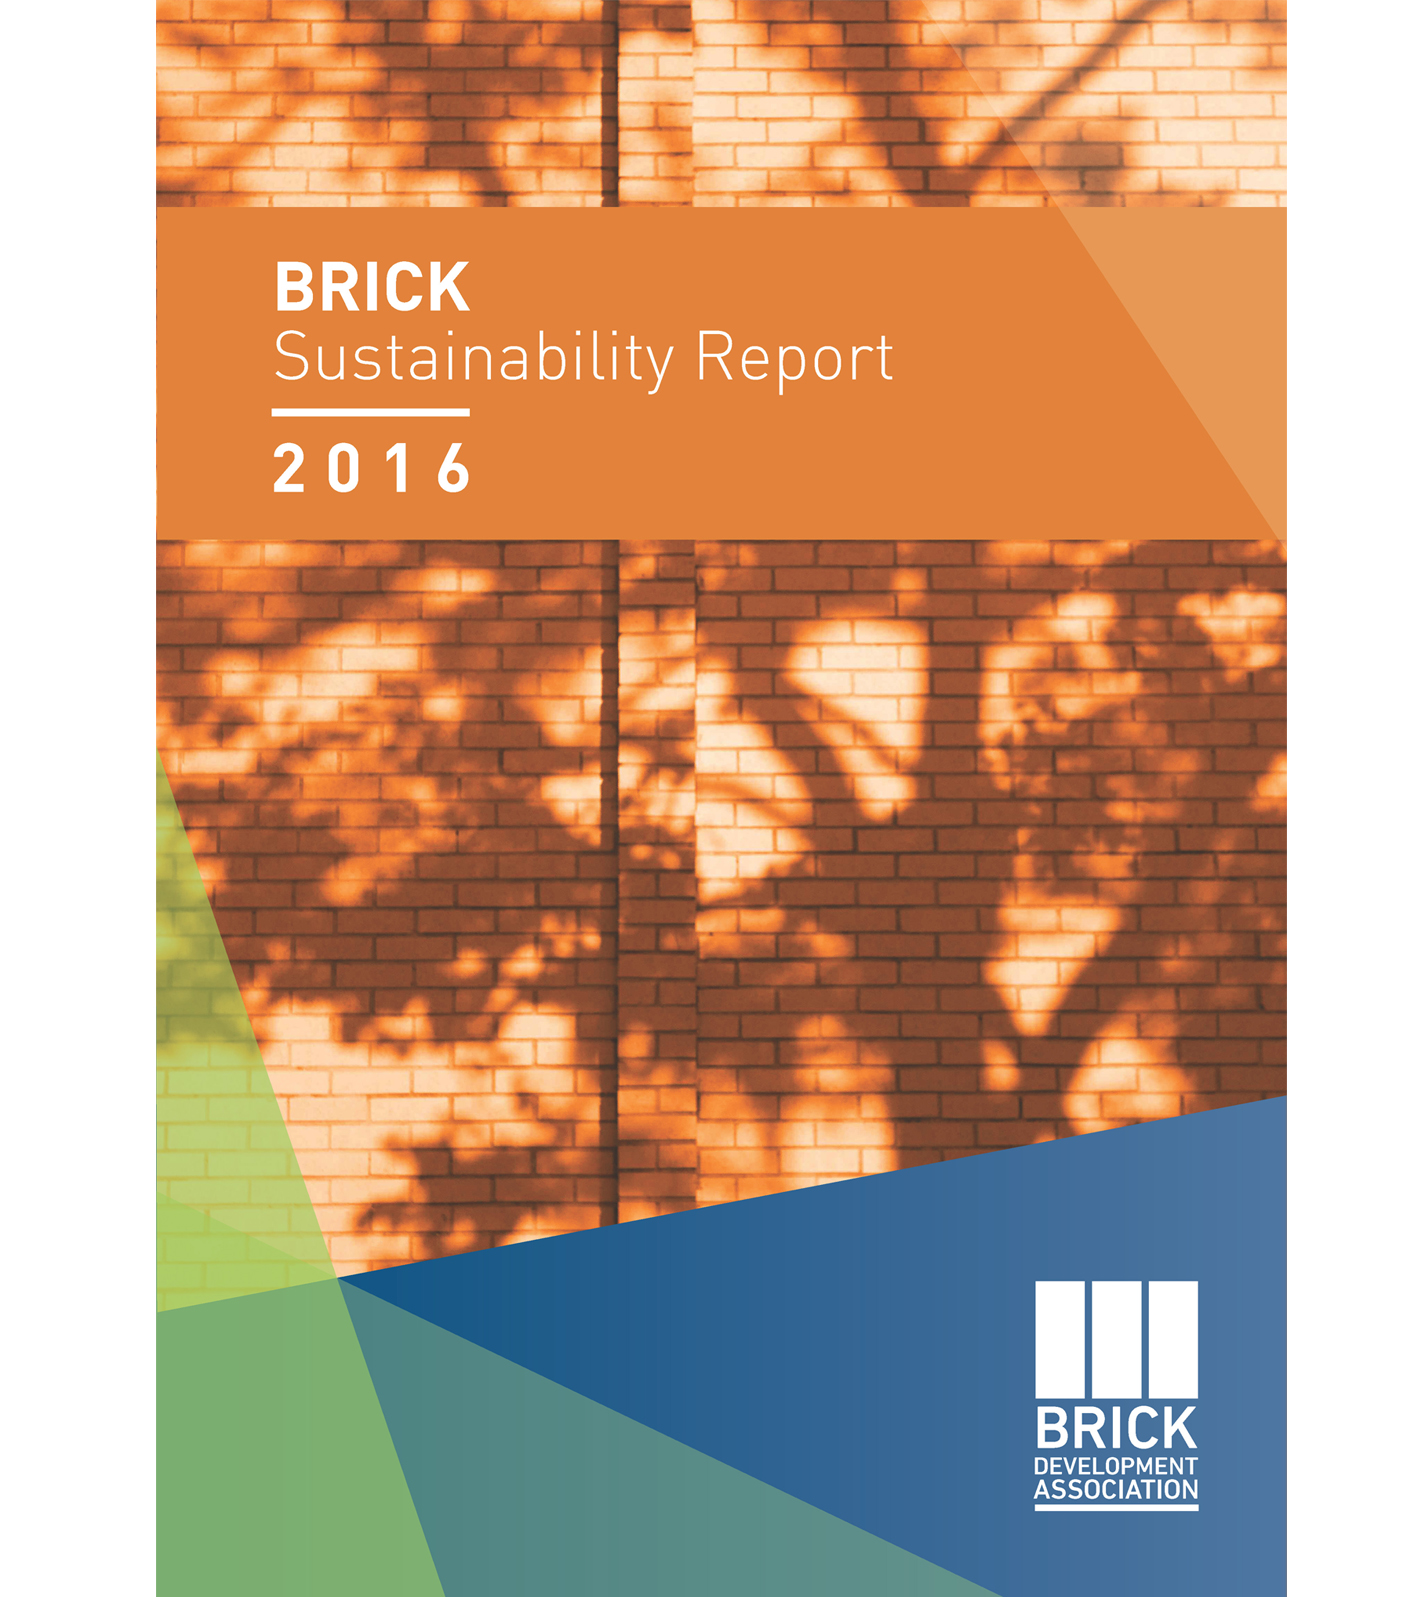 Brick Sustainability Report 2016